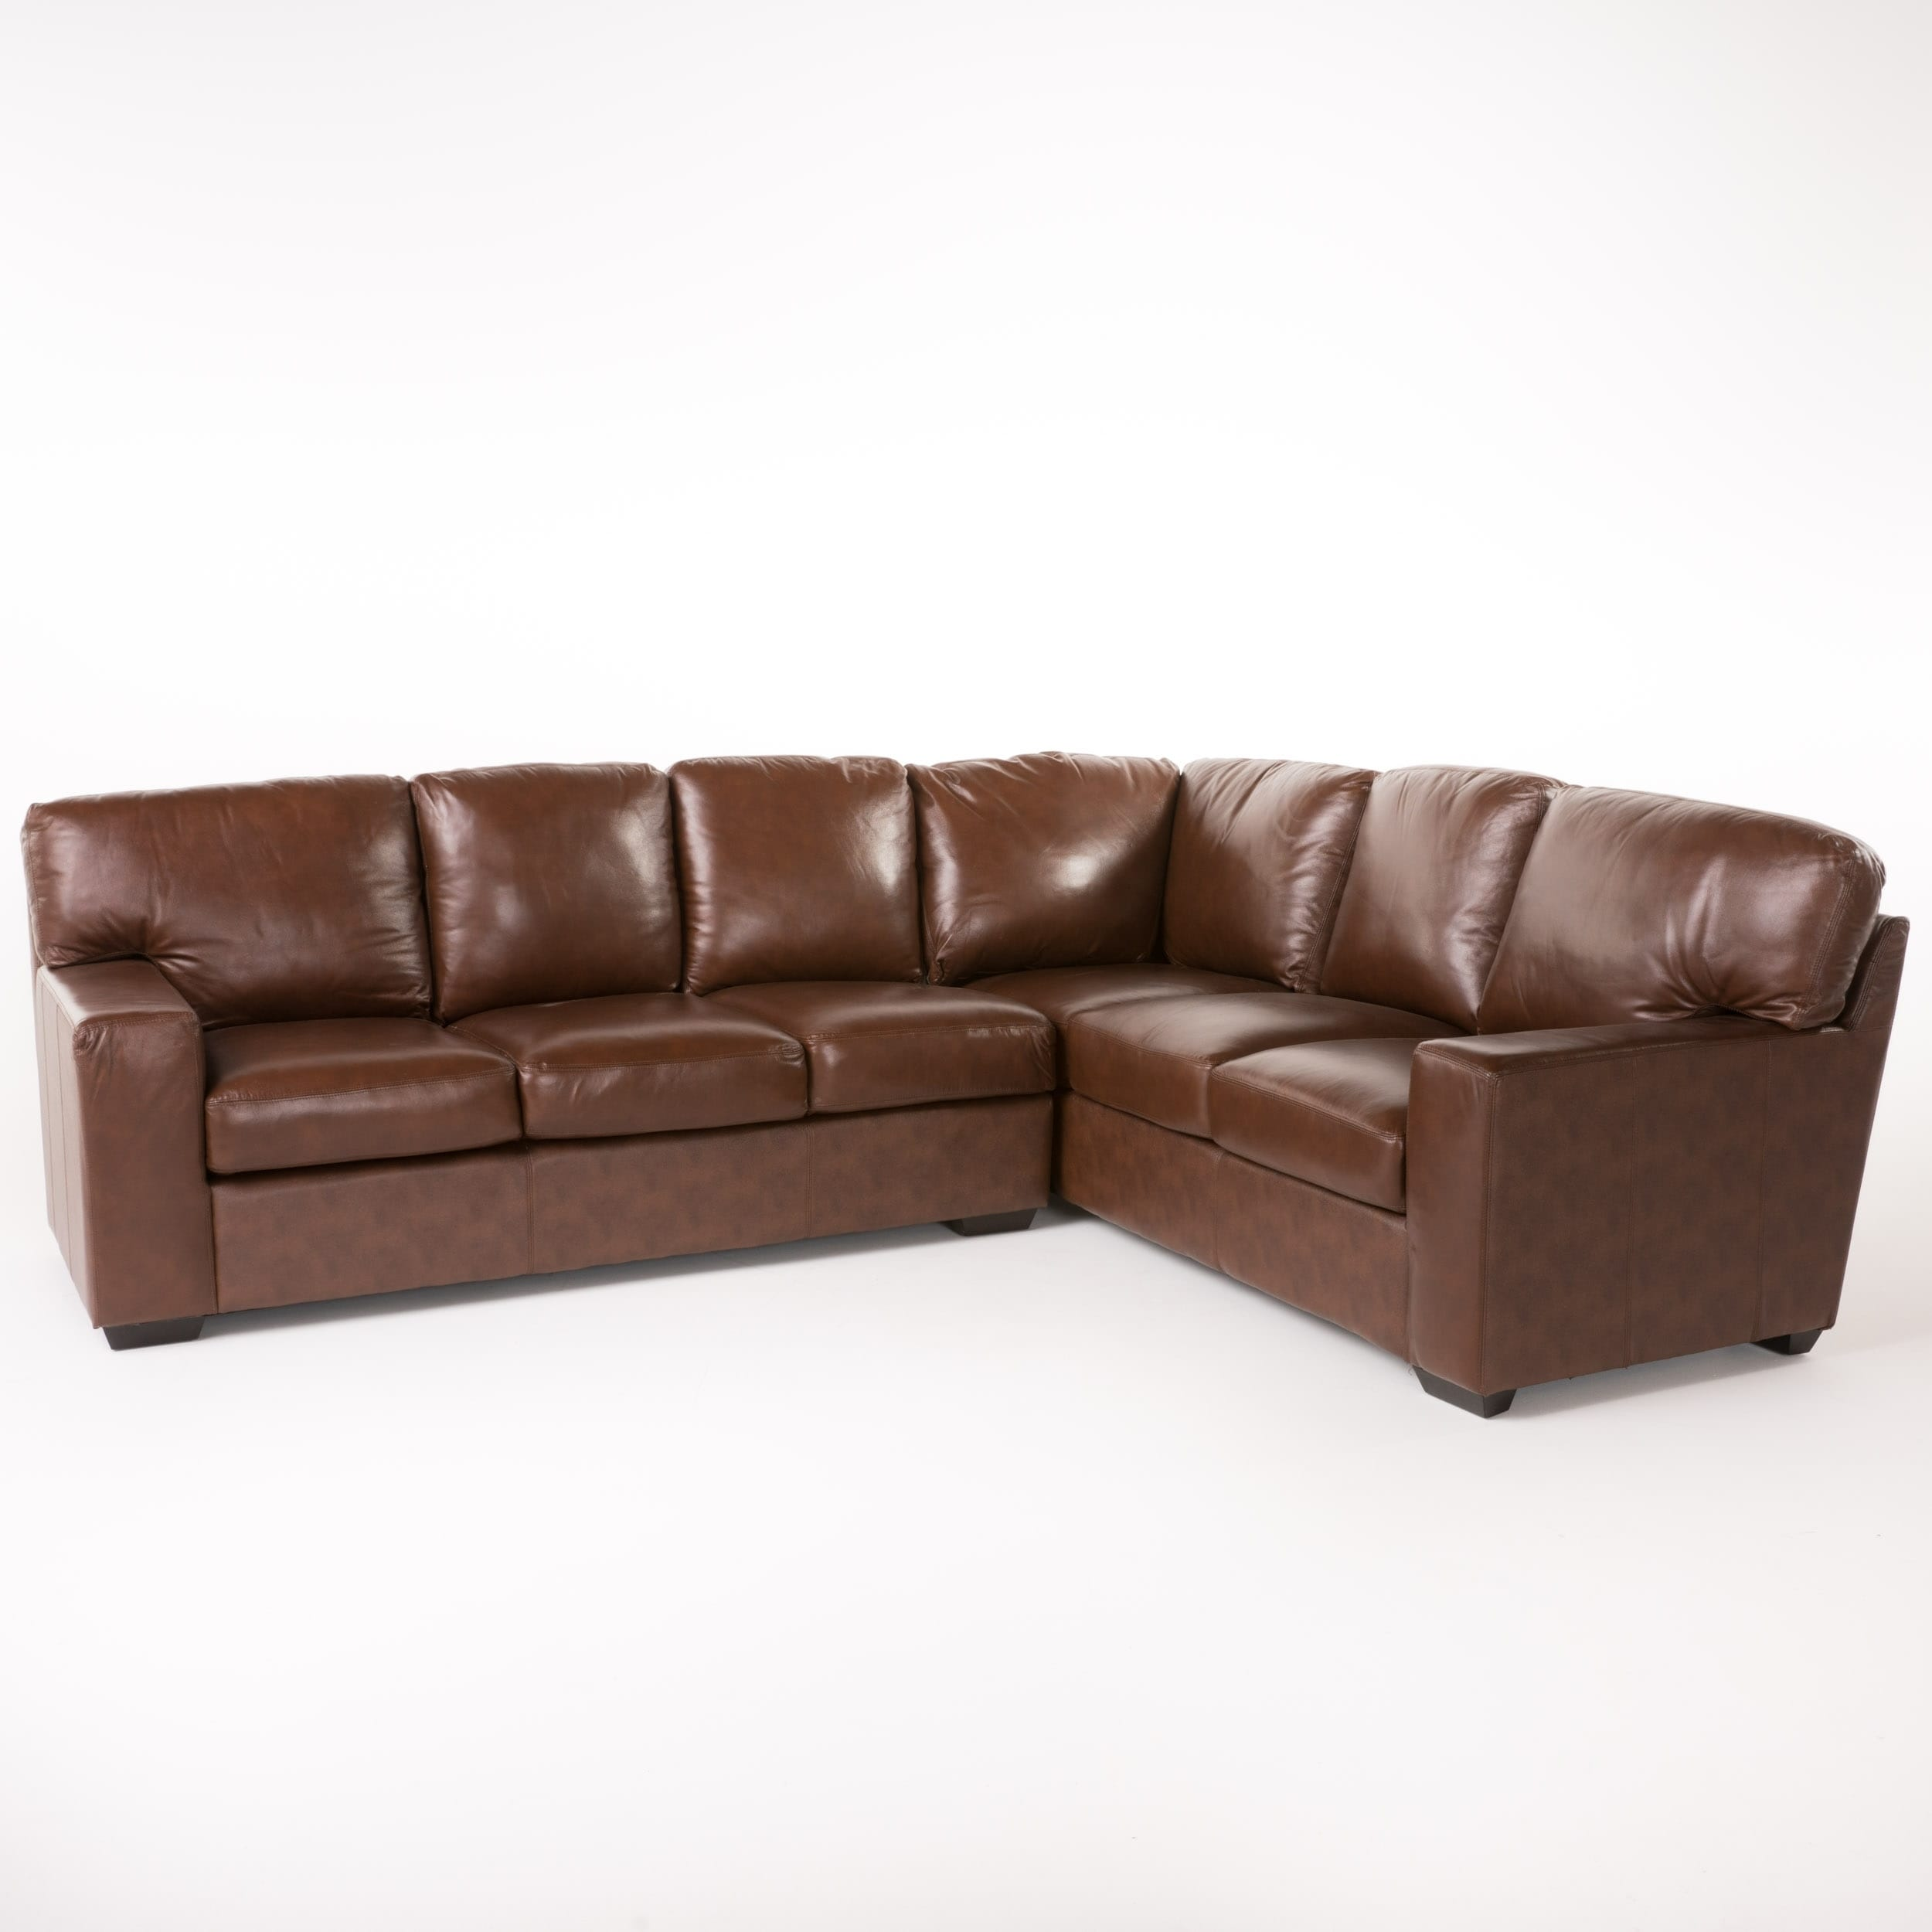 Magnificent Violet Wine Leather Sectional Couch By Christopher Knight Home Gamerscity Chair Design For Home Gamerscityorg